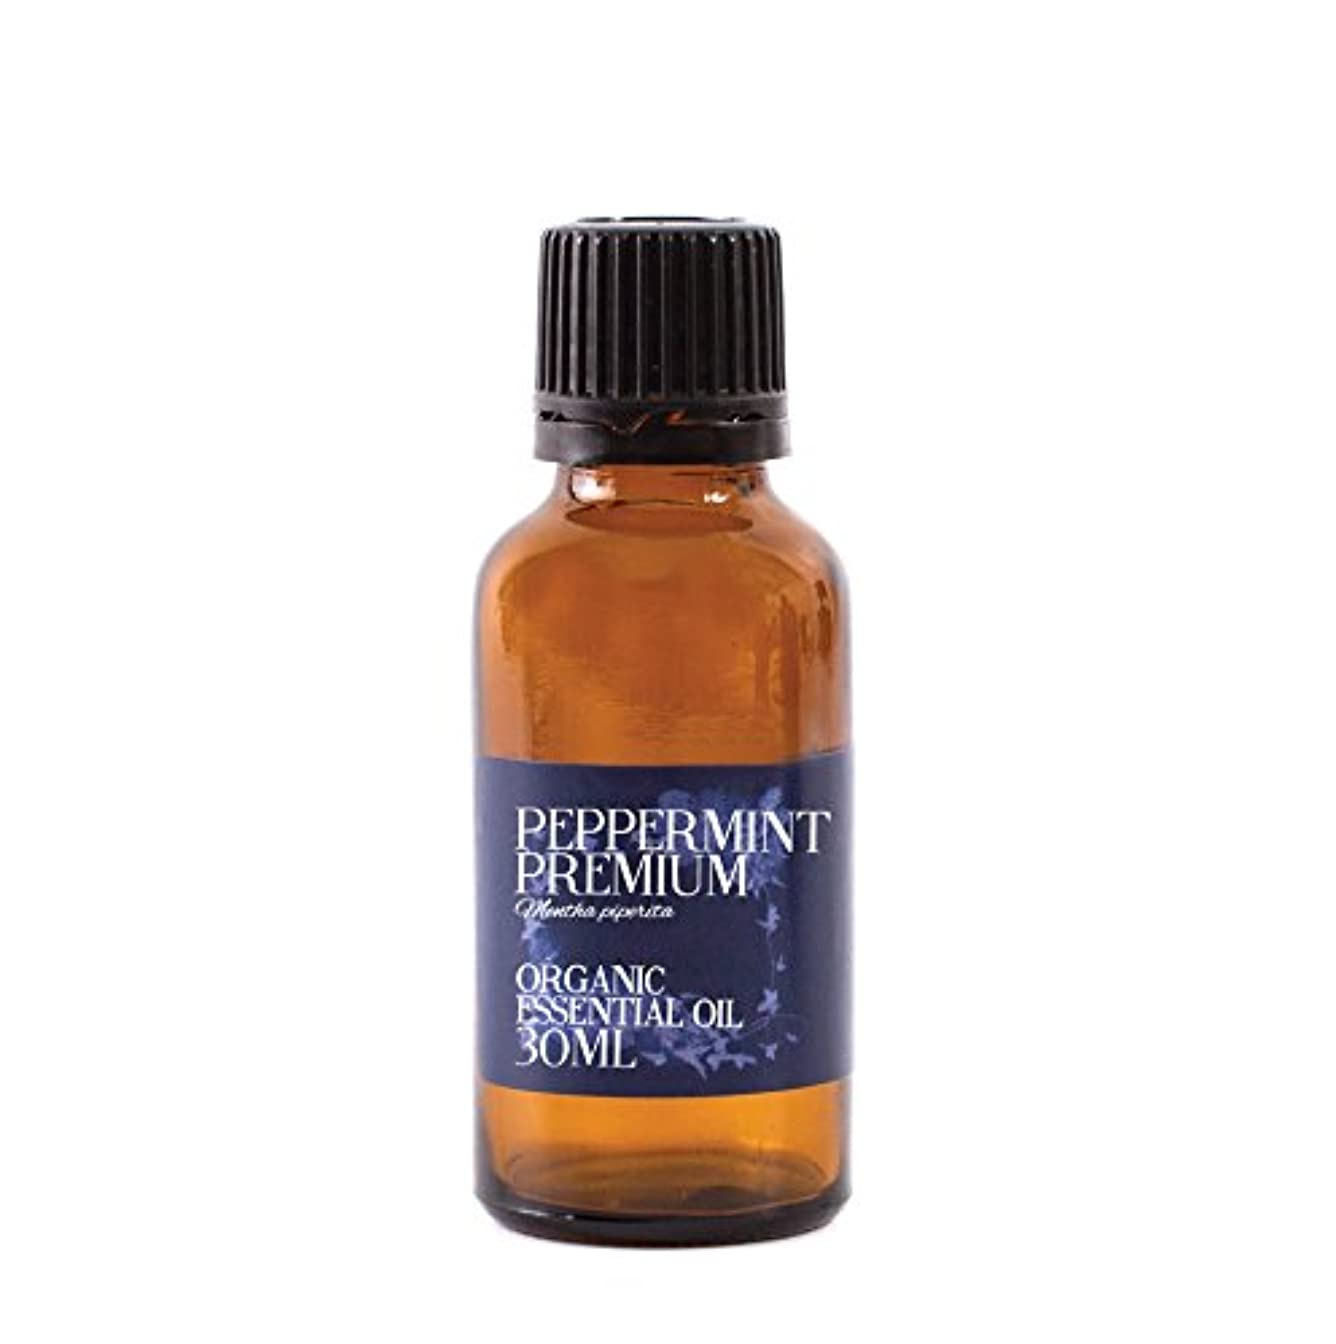 爆風スペクトラム浸透するMystic Moments | Peppermint Premium Organic Essential Oil - 30ml - 100% Pure